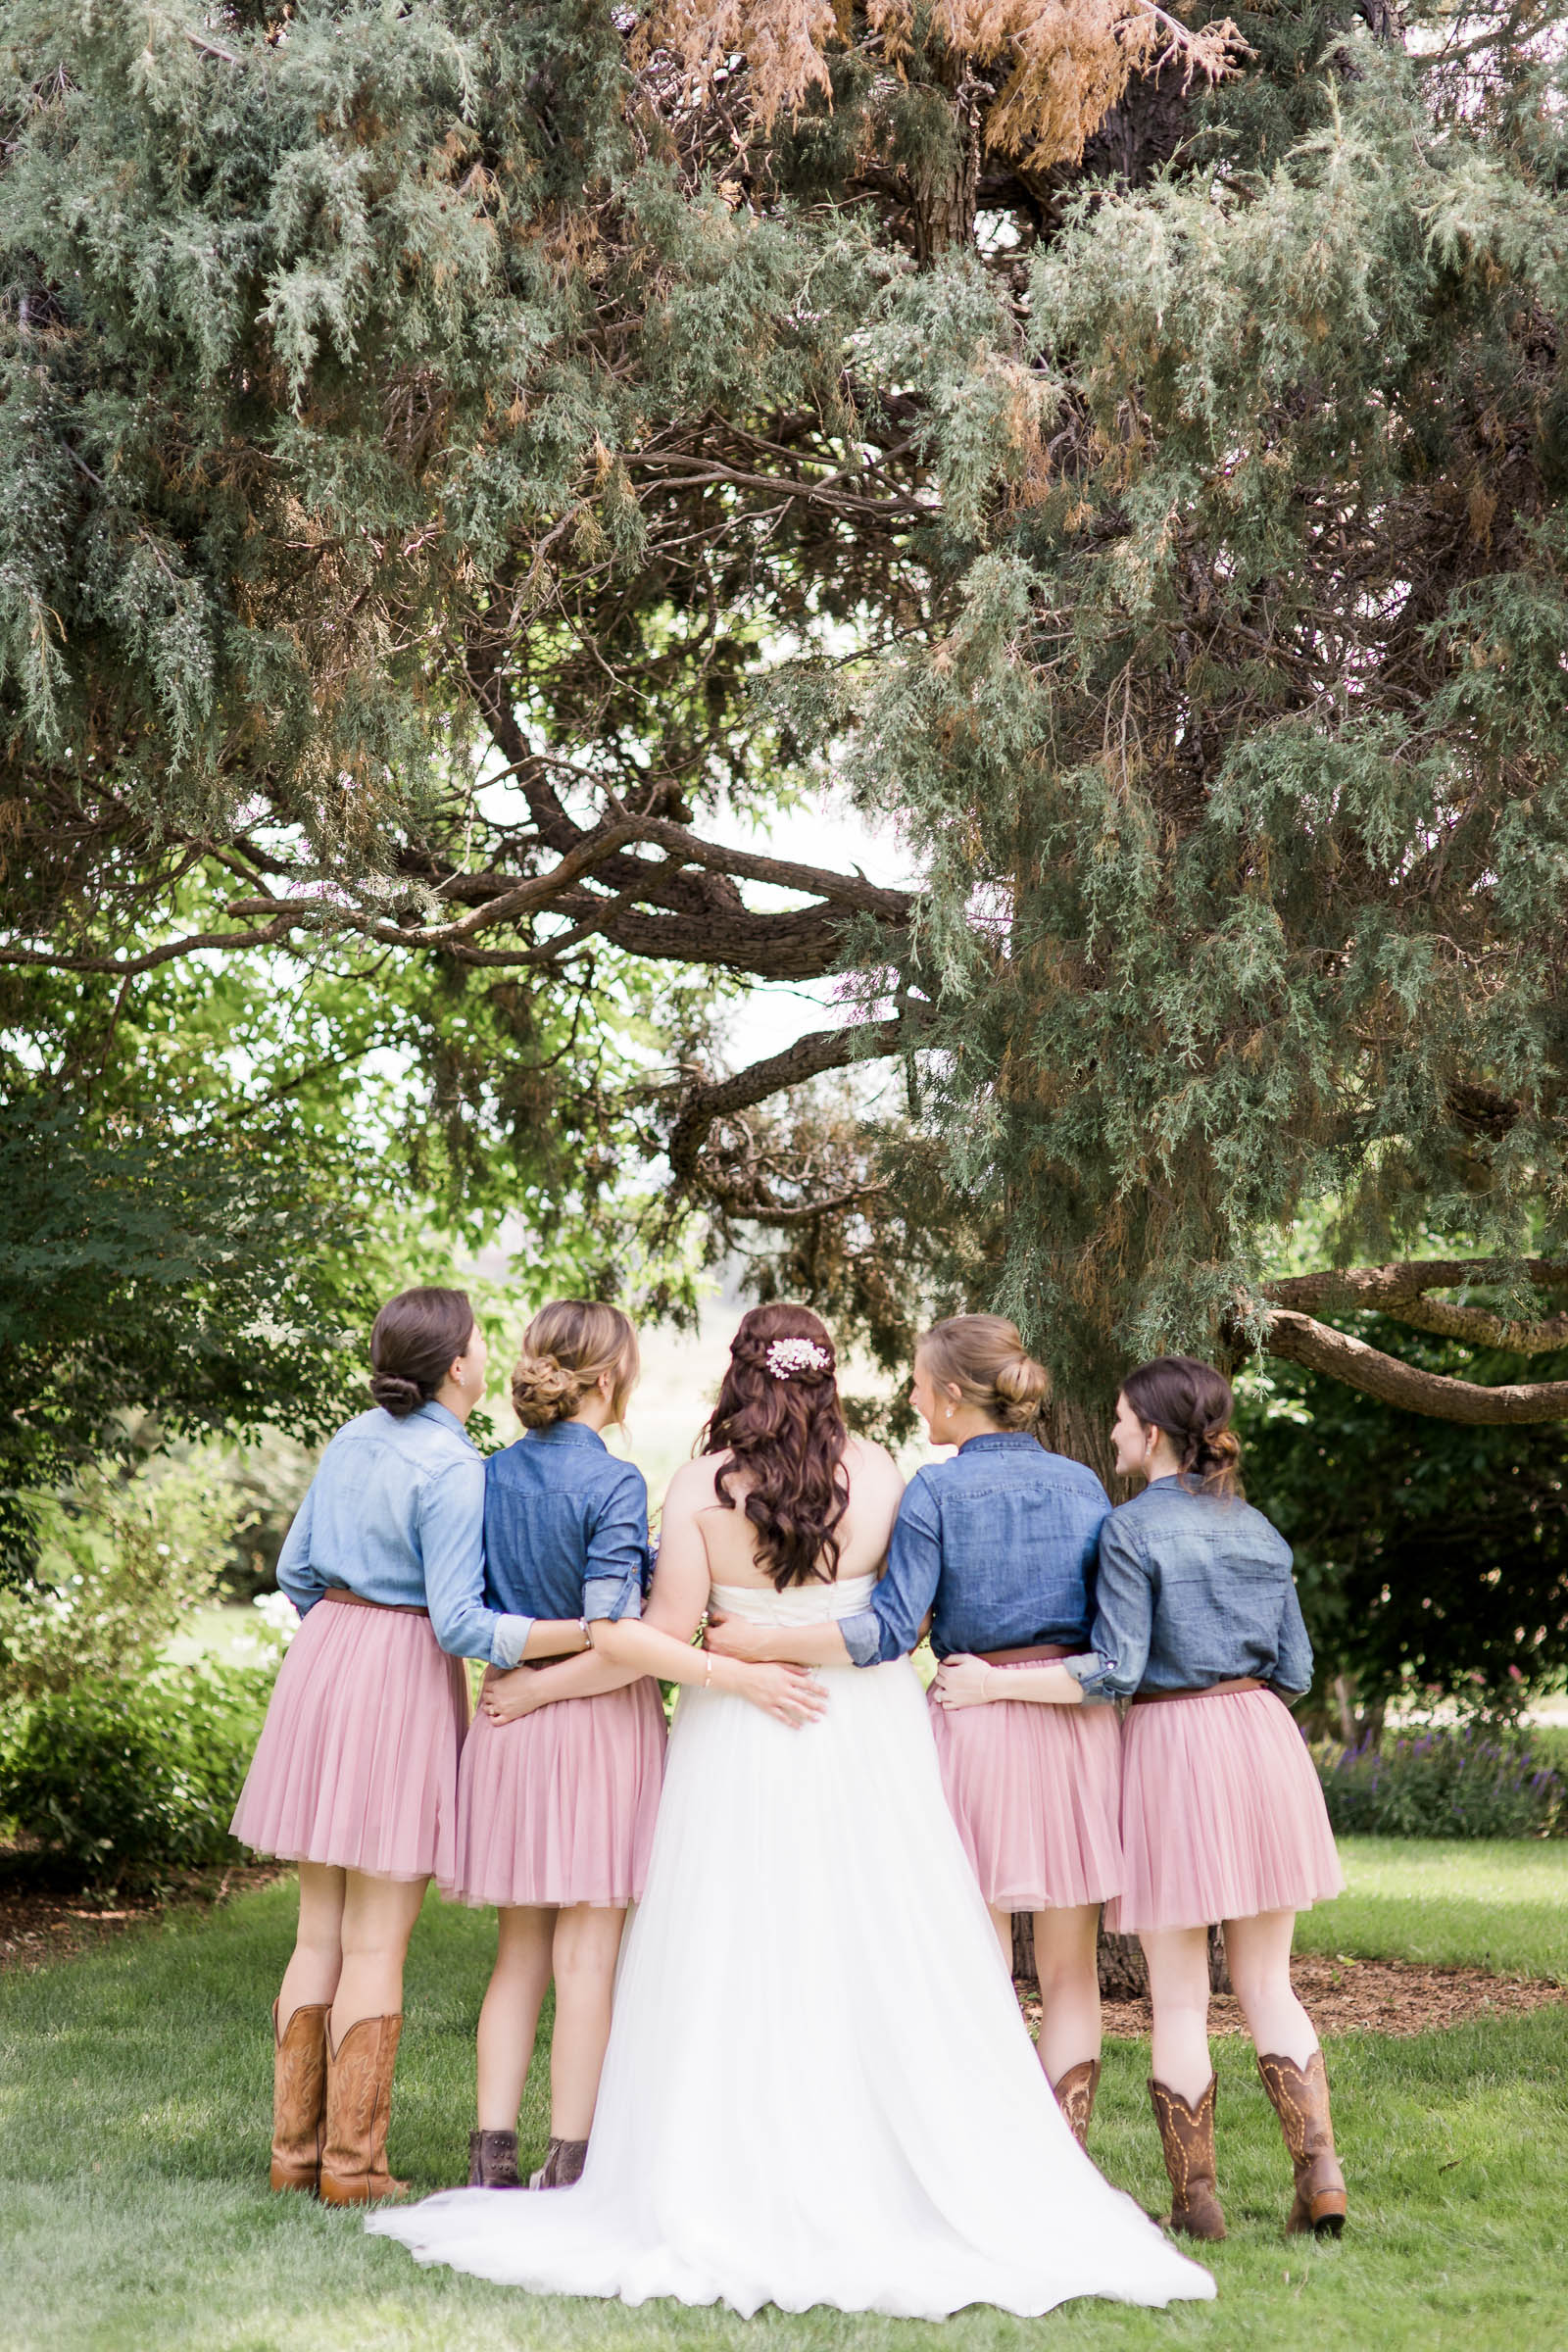 Chatfield Farms Denver Botanic Garden Wedding by Laramie based Photographer Megan Lee Photography